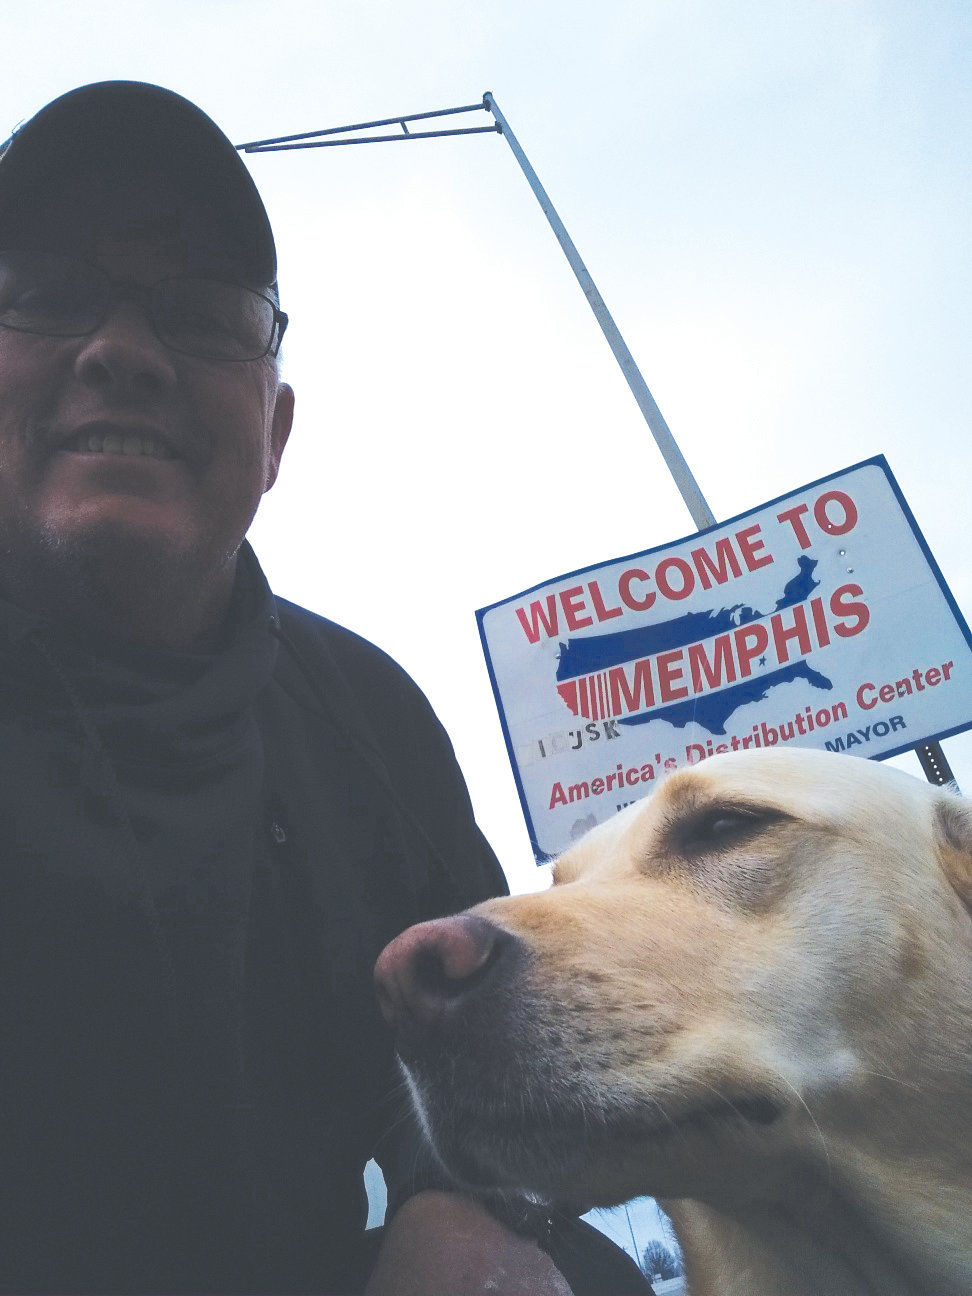 Ken Brock reaches Memphis on his journey from Keystone Heights to Coeur d'Alene, Idaho, to create awareness for WWP.